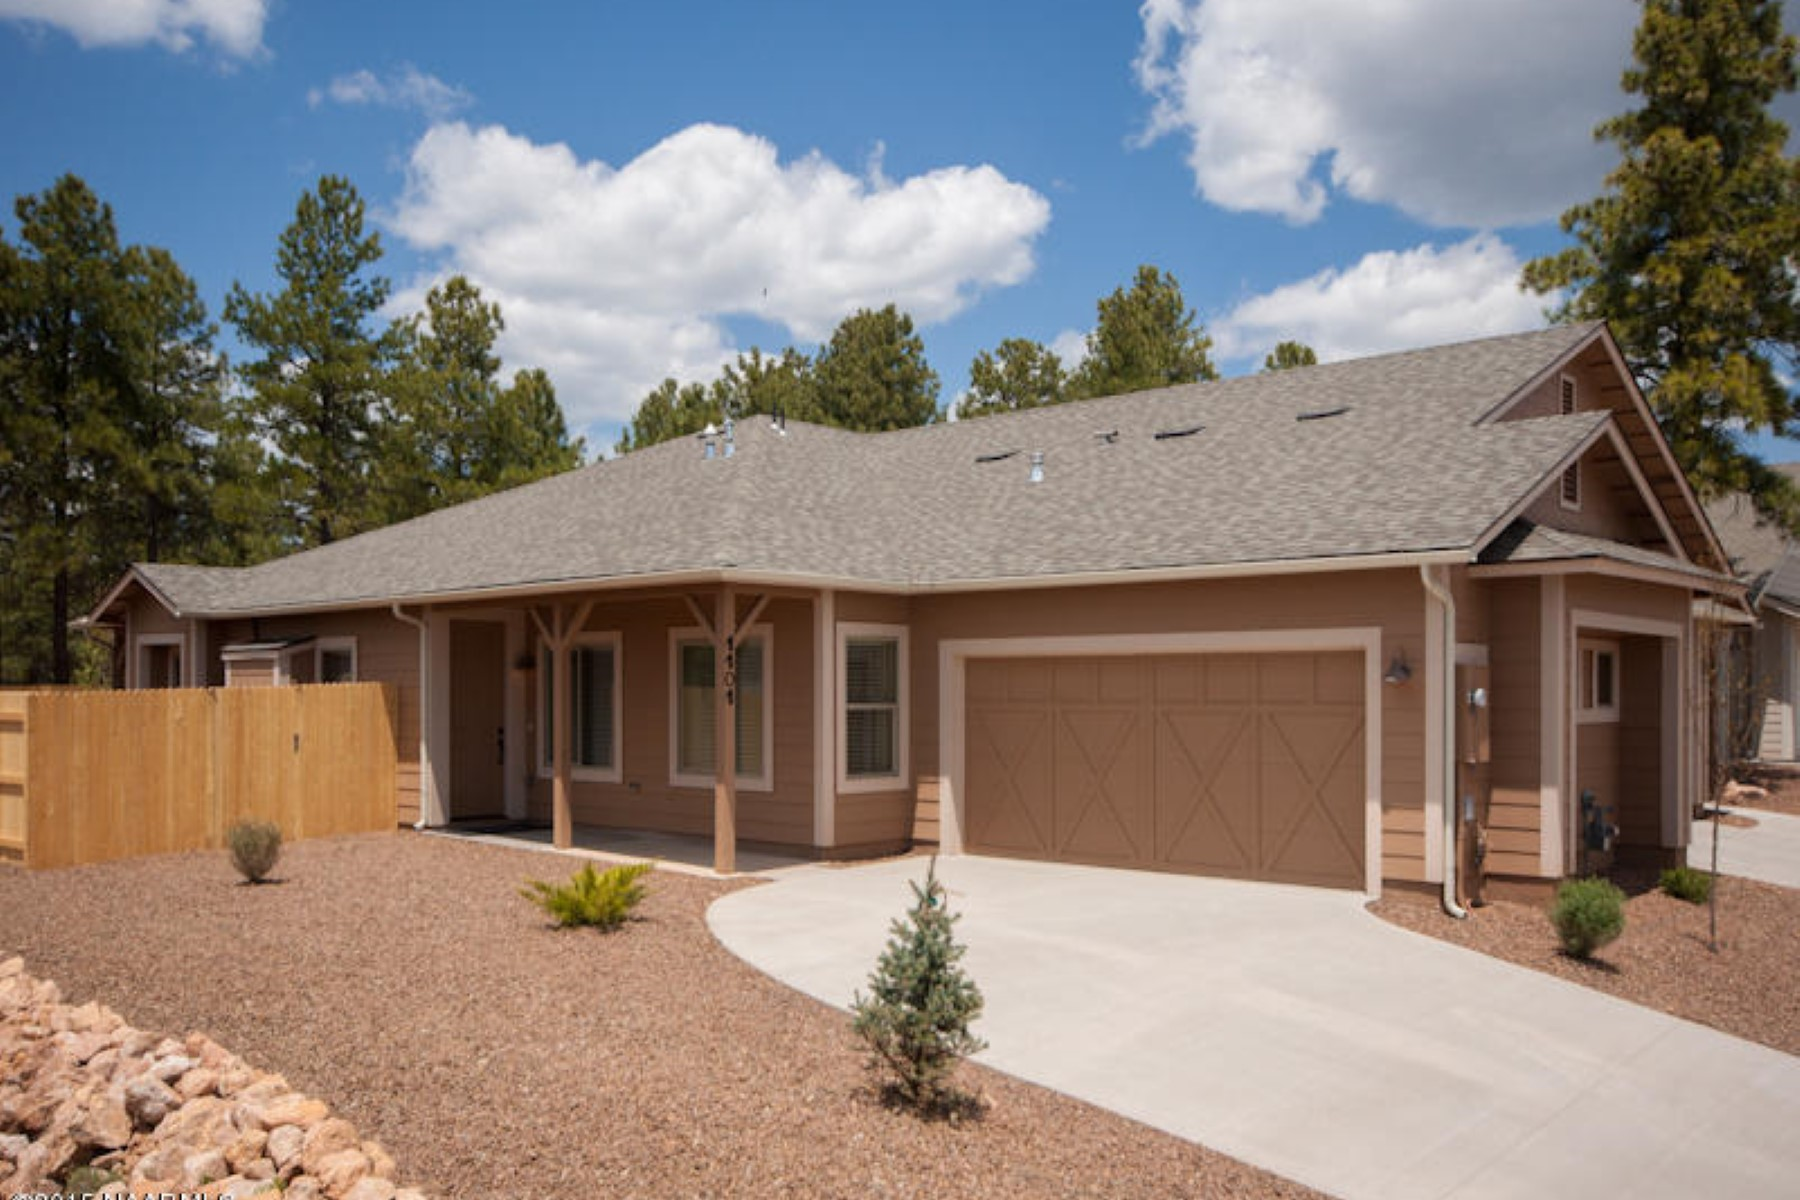 Casa para uma família para Venda às Single level three Bedroom two bath 1,399 sq. ft home 3199 E Cold Springs TRL Lot 20 Flagstaff, Arizona 86004 Estados Unidos